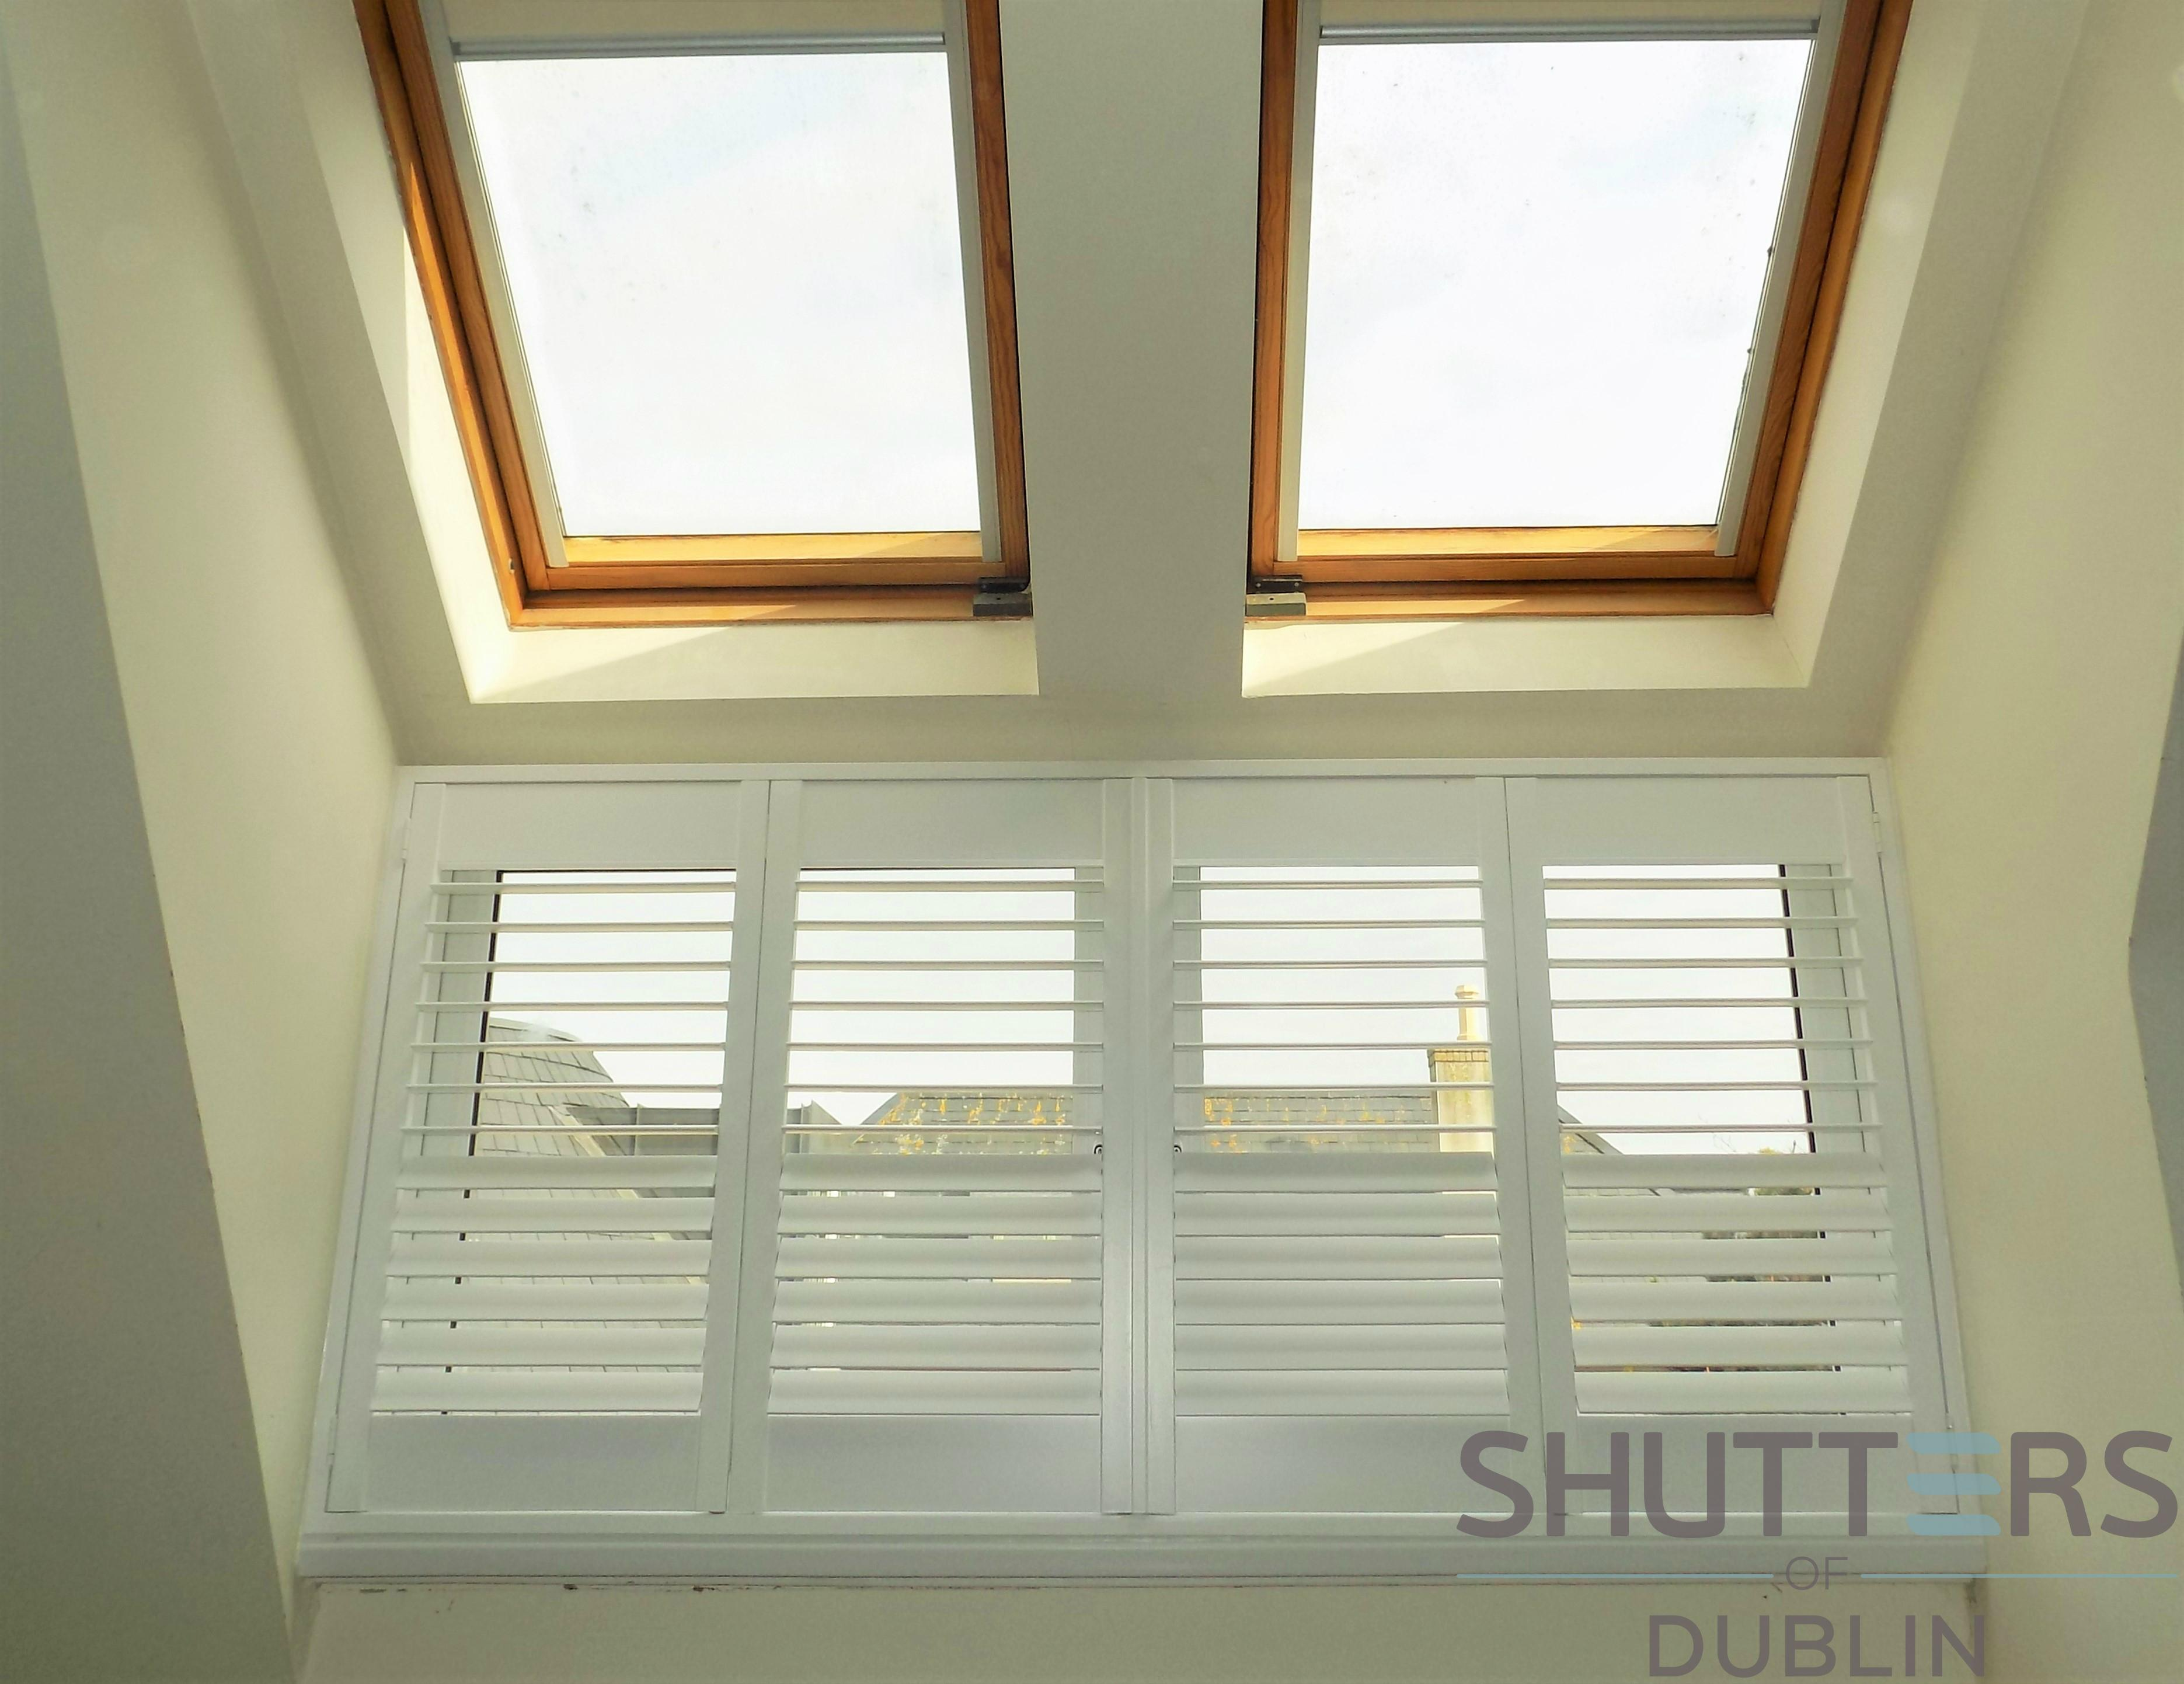 AFTER - Dormer window with Shutters